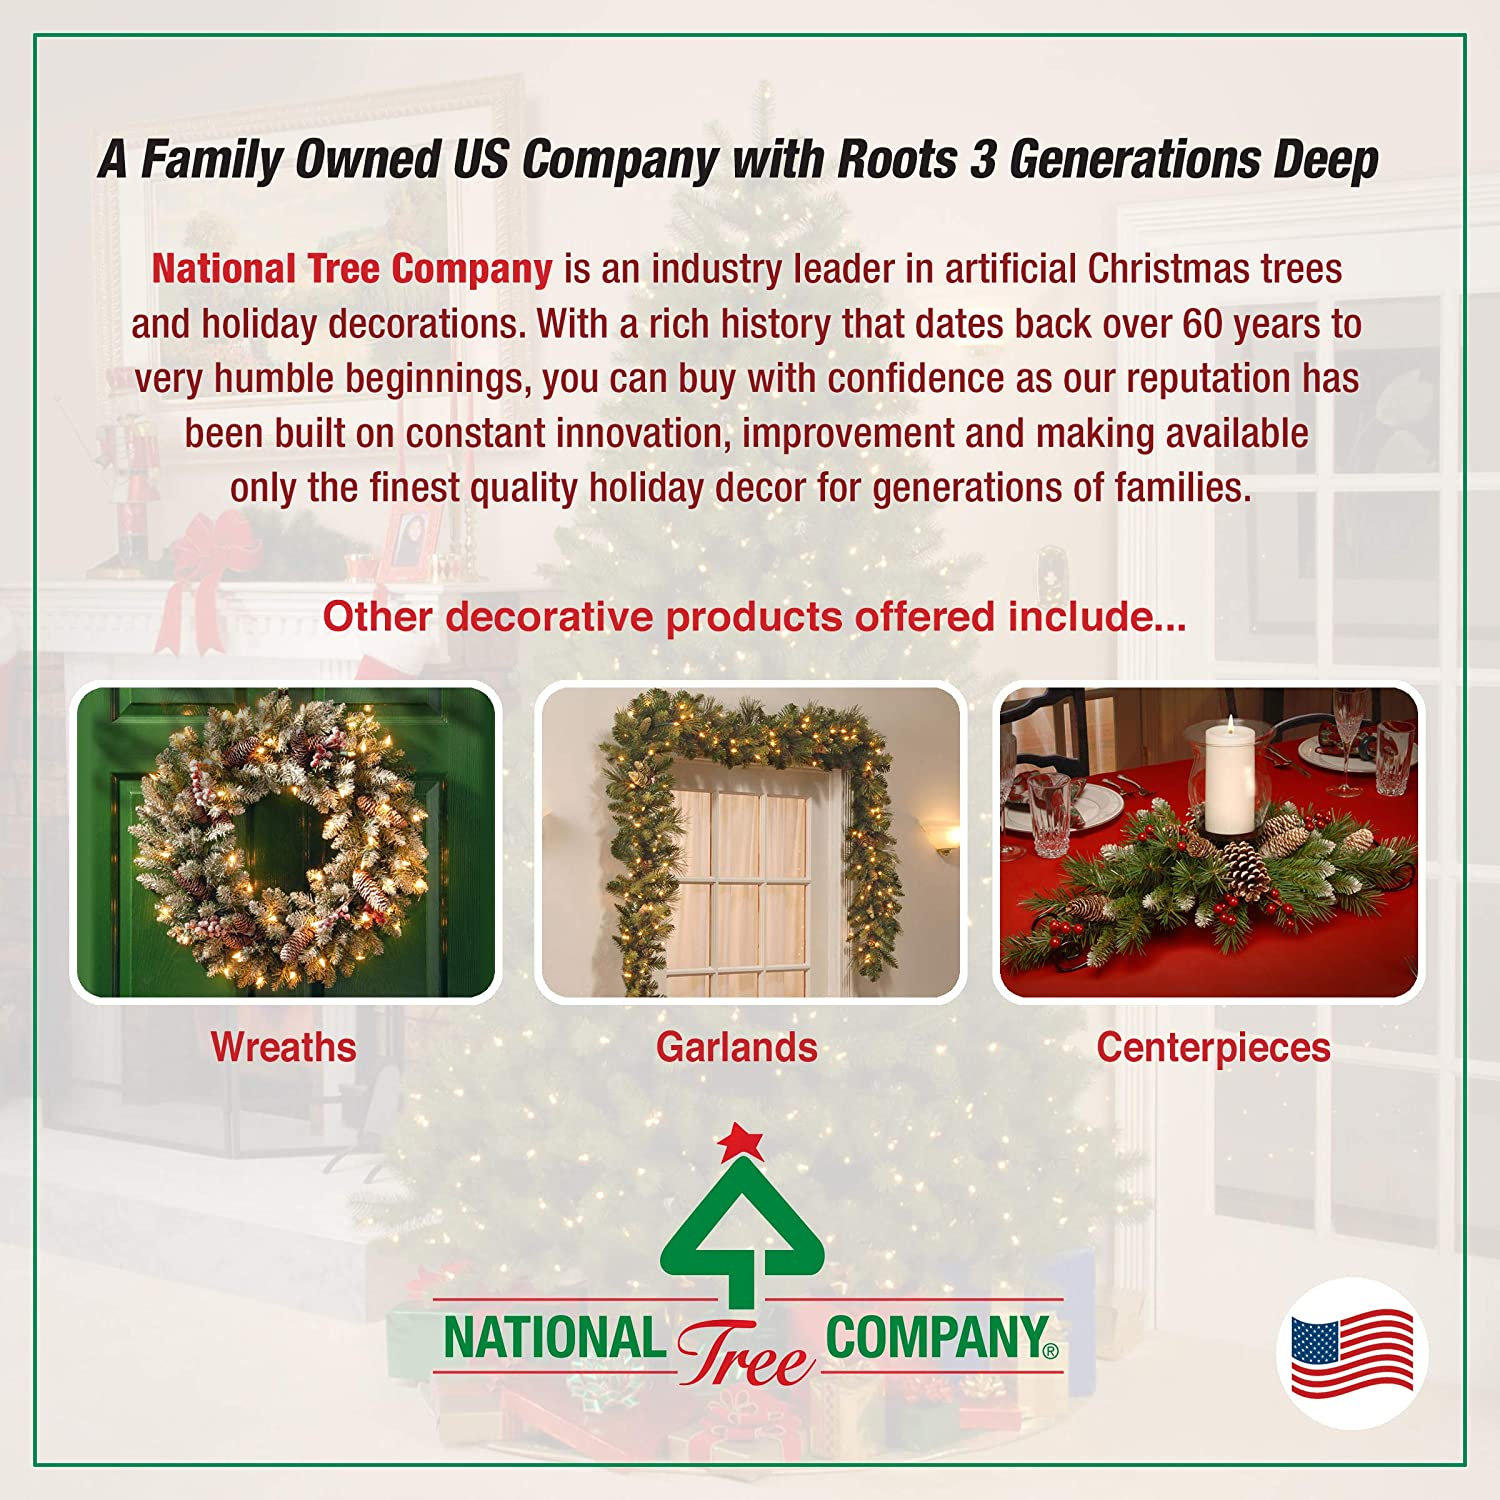 National Tree Company Pre-lit Artificial Christmas Garland Snowy Bristle Pine 9 ft Includes Pre-Strung Lights